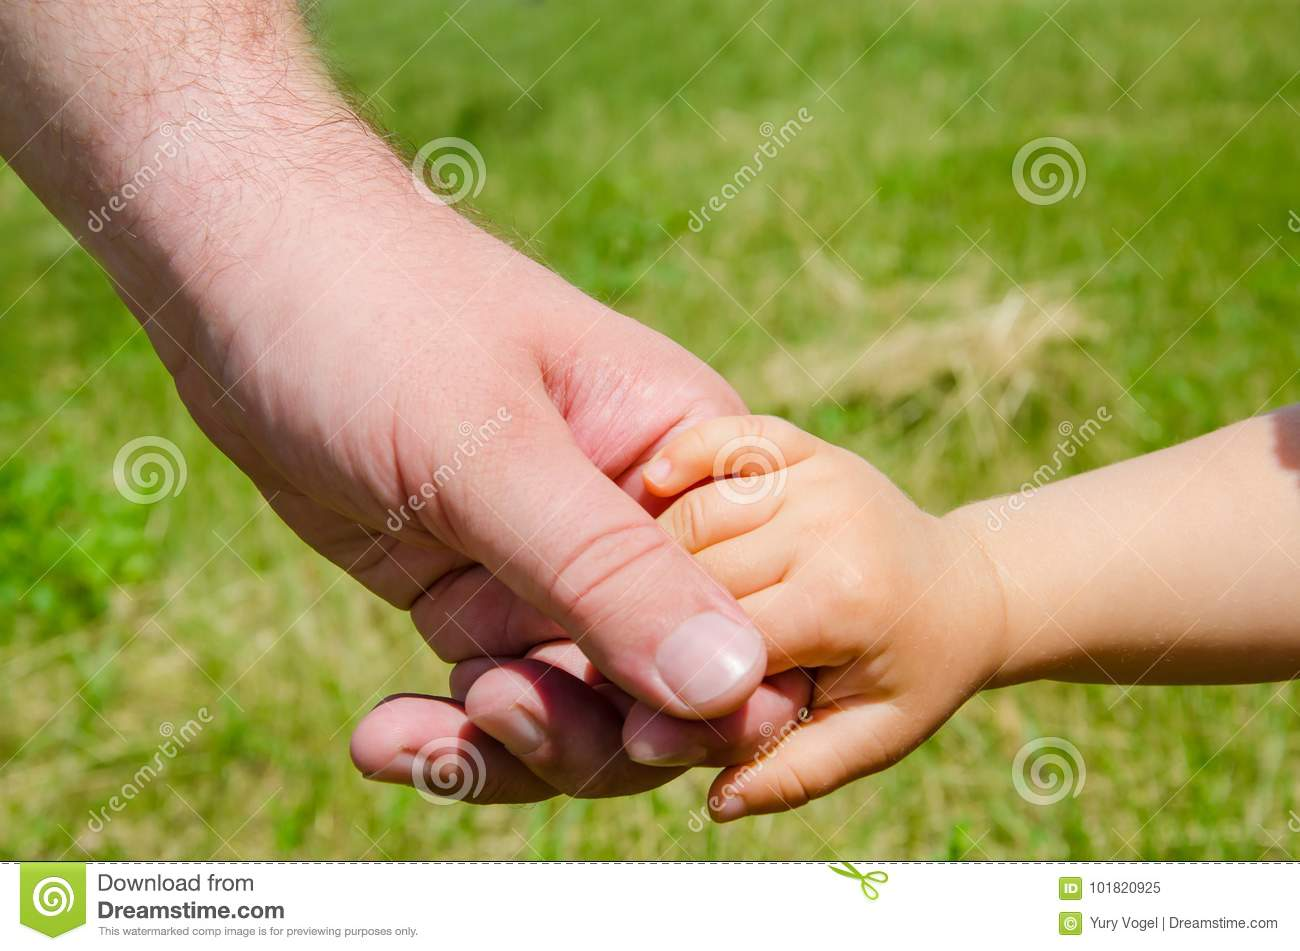 What does the childs hand dream about